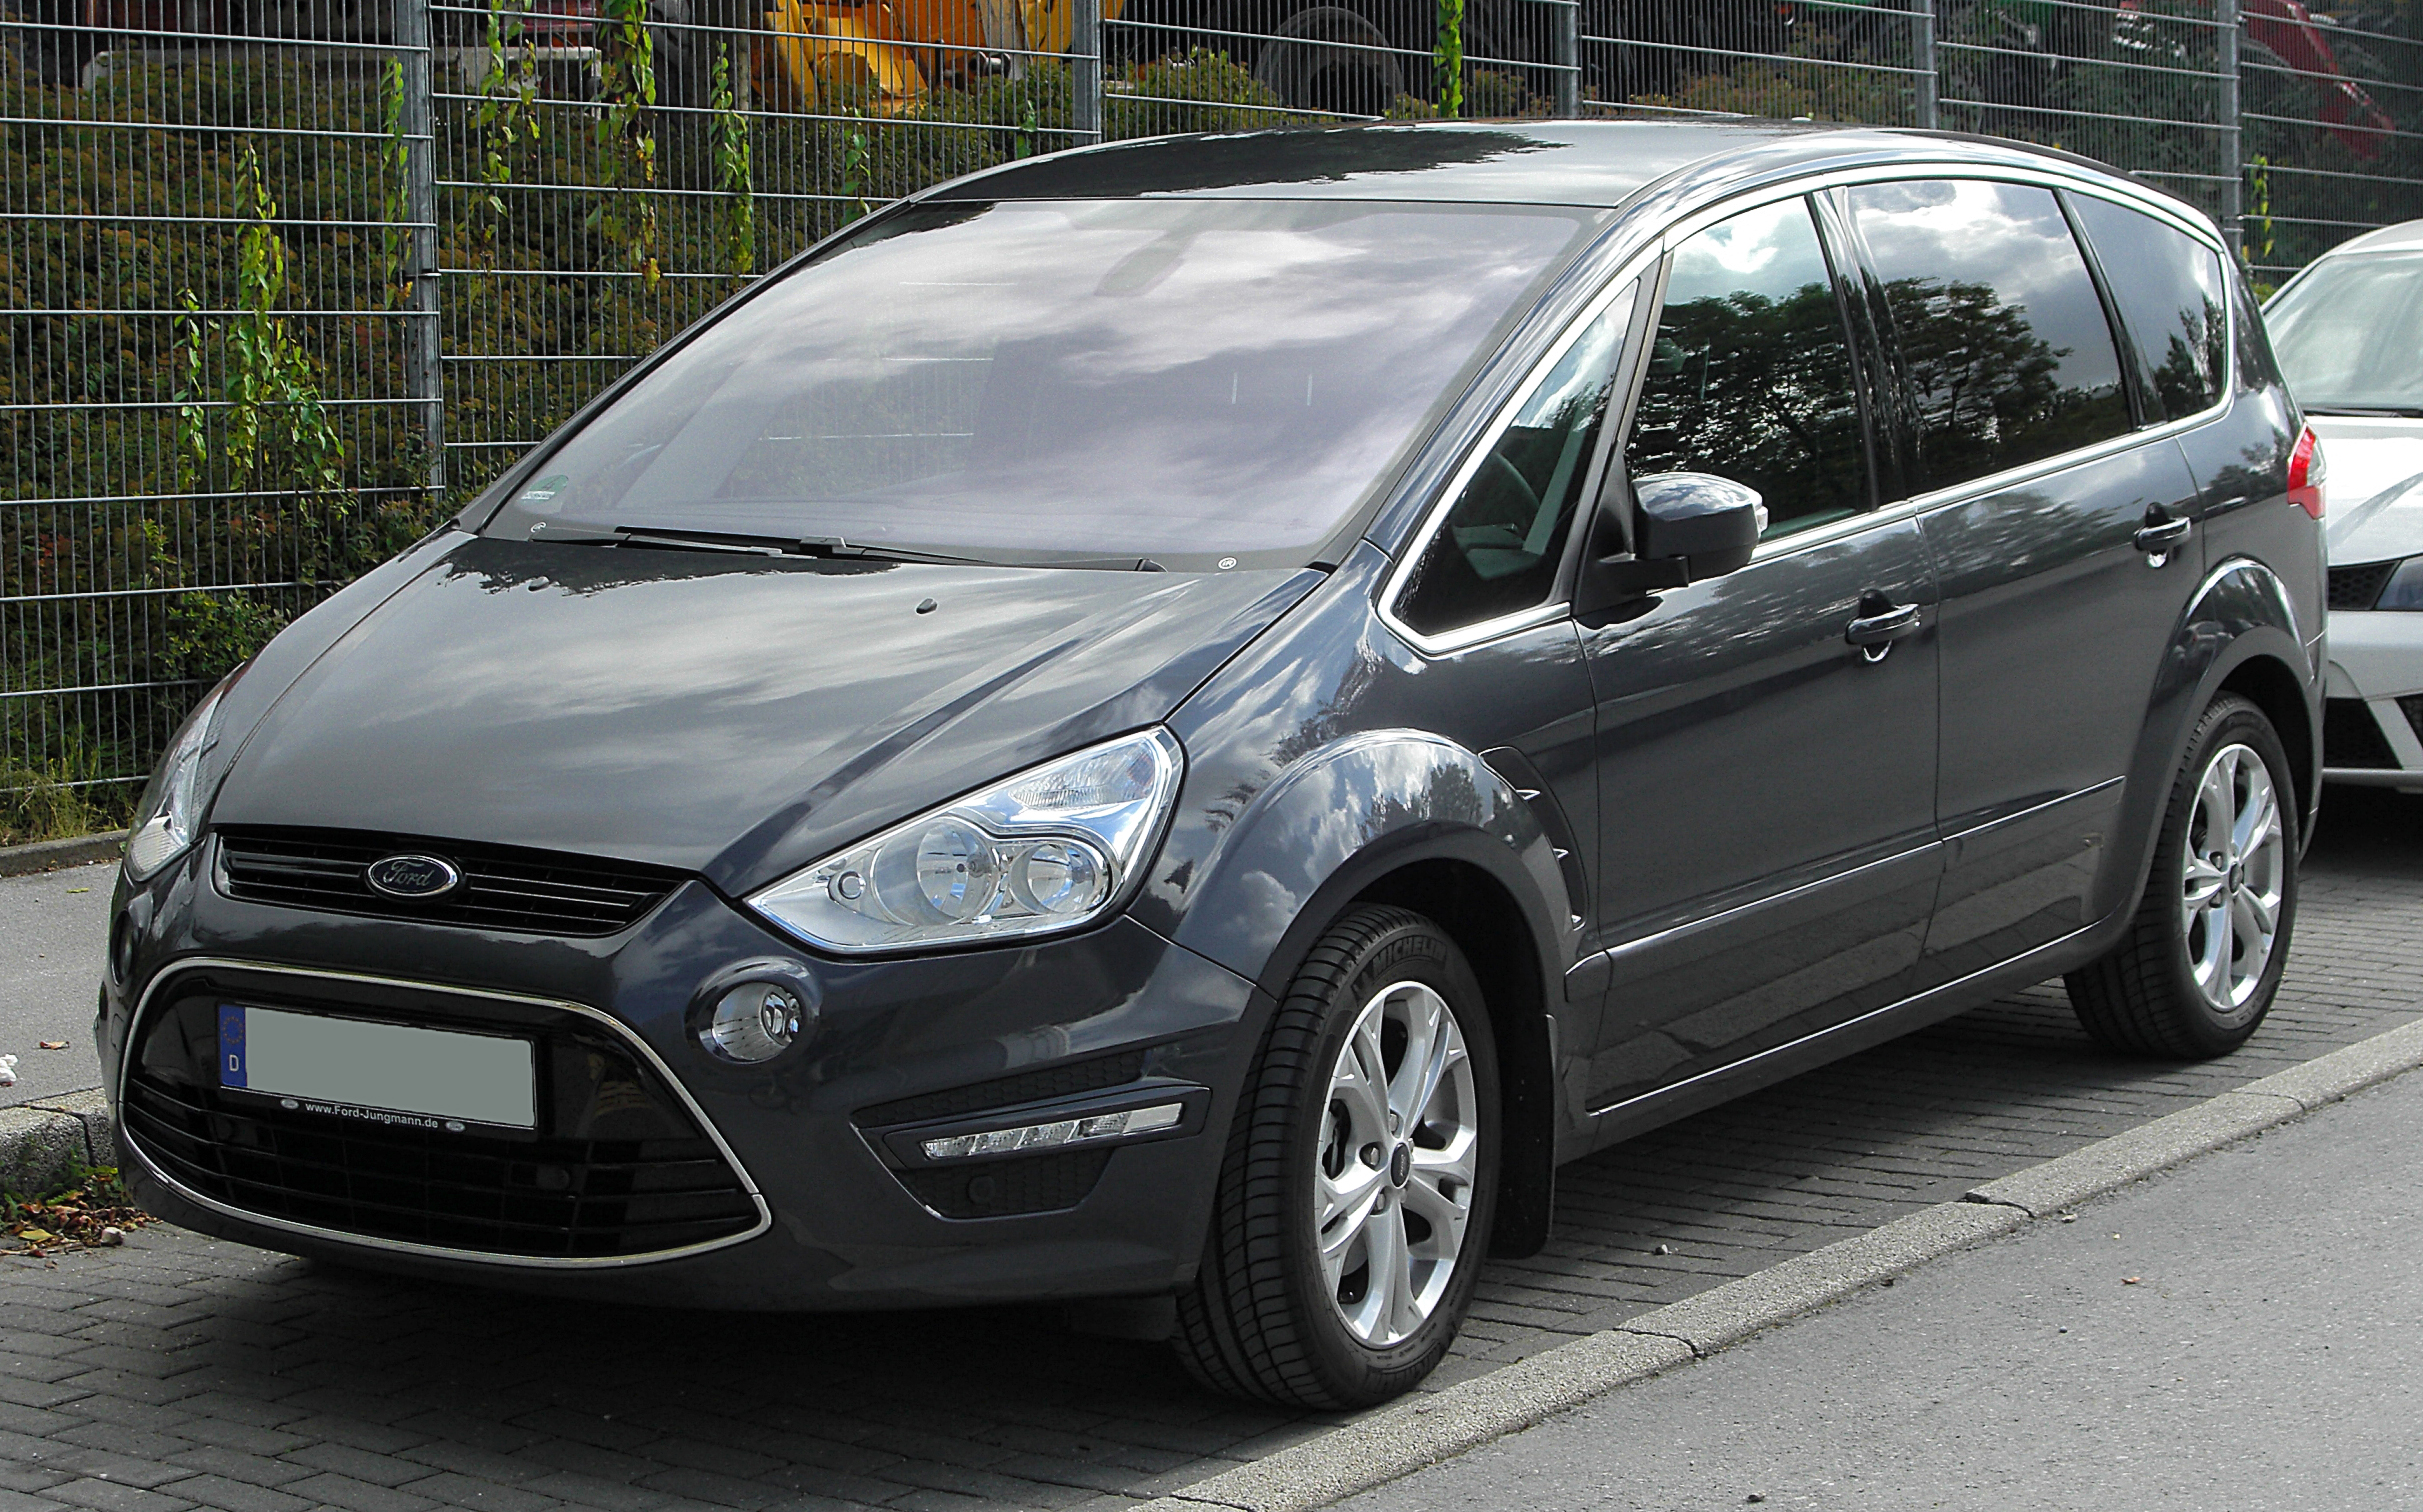 ford s-max images #9